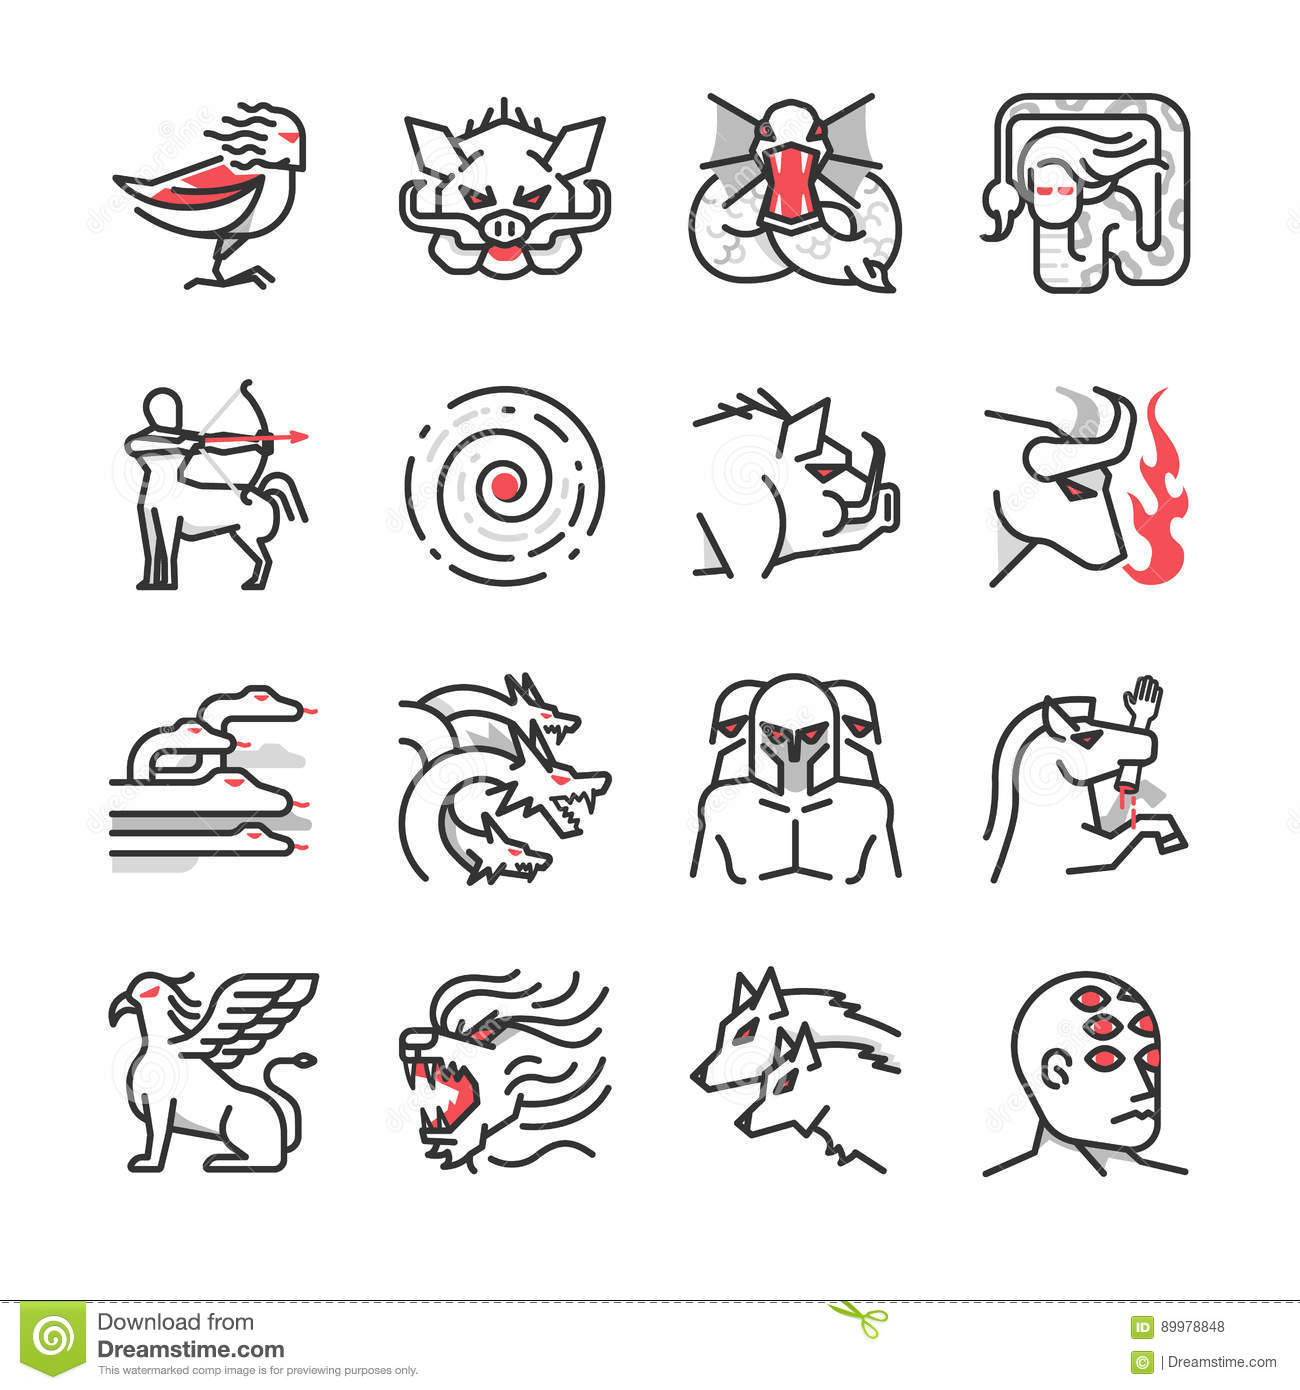 Hydra Cartoons Illustrations Amp Vector Stock Images